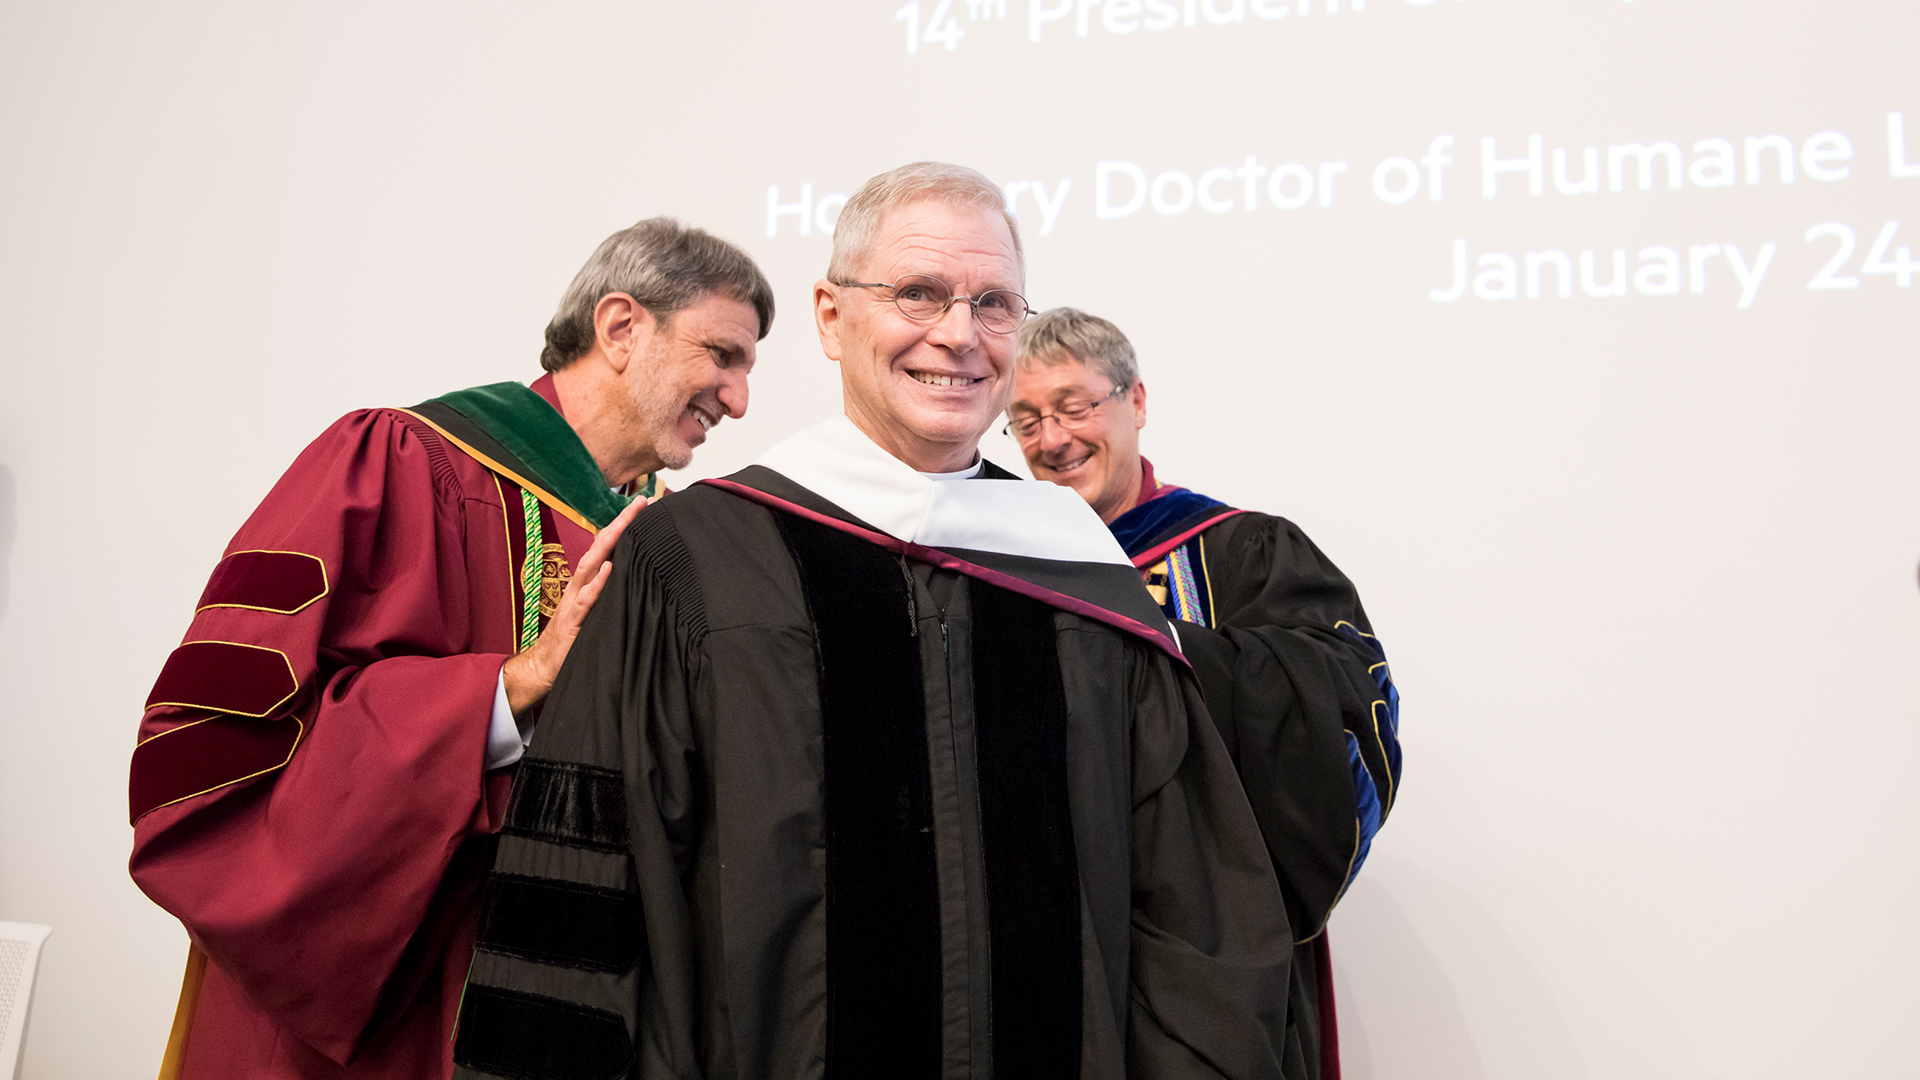 Highlights YouTube poster - Highlights: Rev. Robert B. Lawton, S.J., Receives Honorary Degree